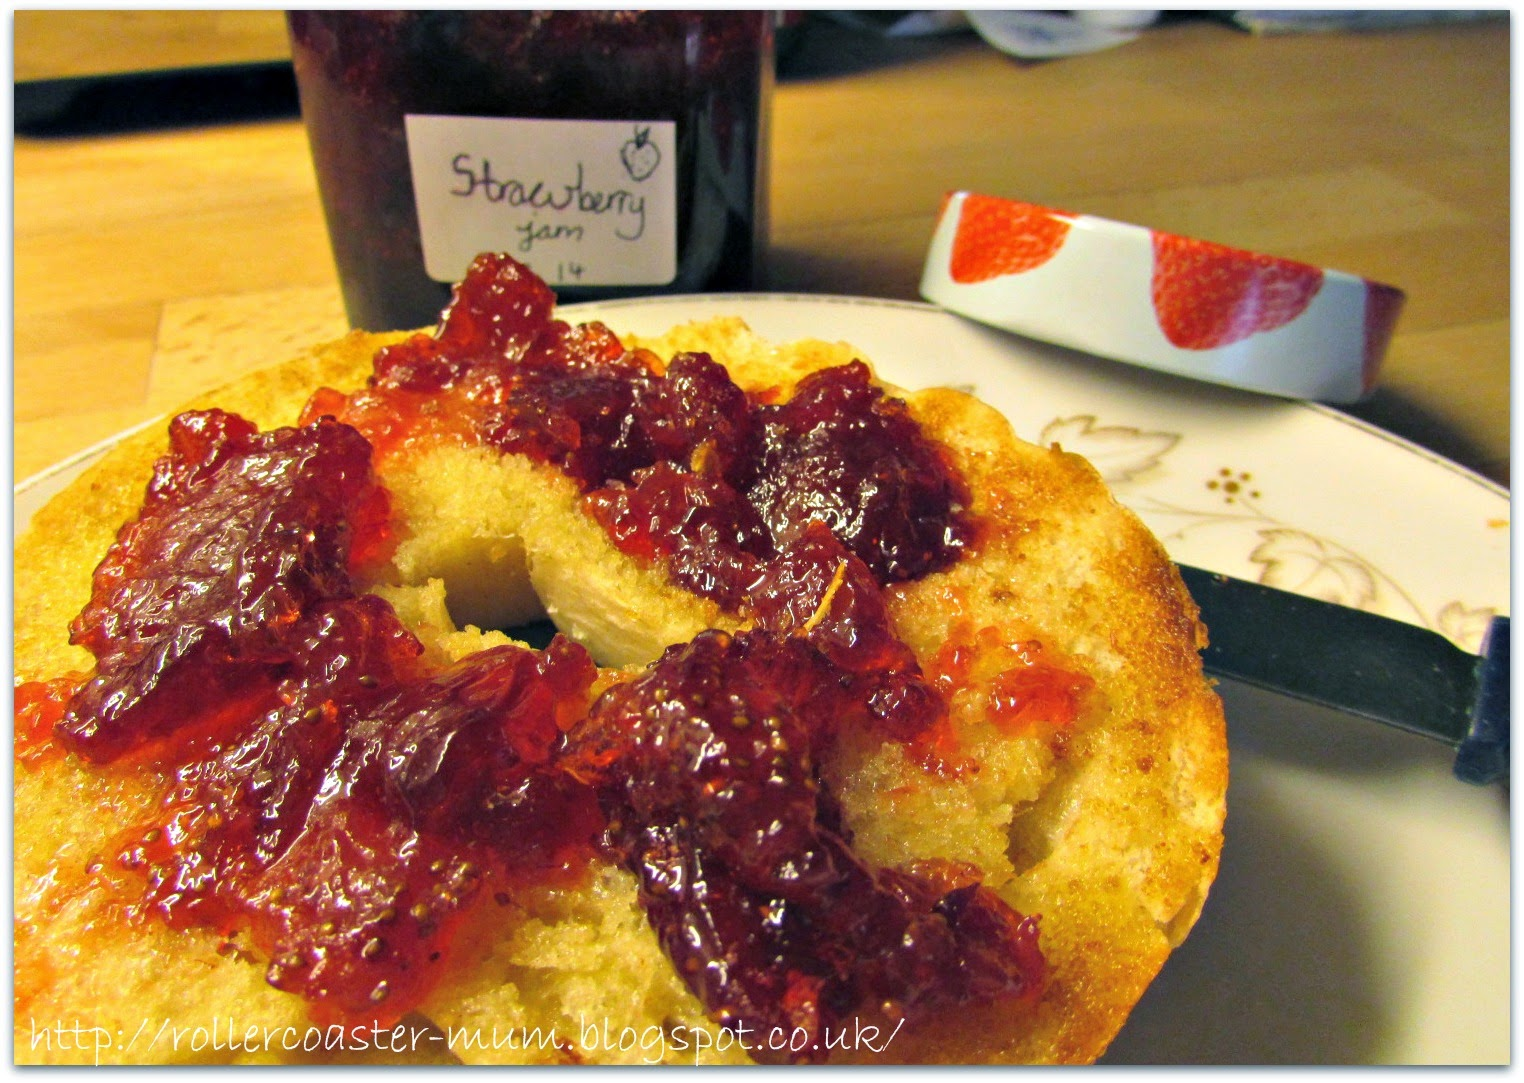 Strawberry Jam - homemade